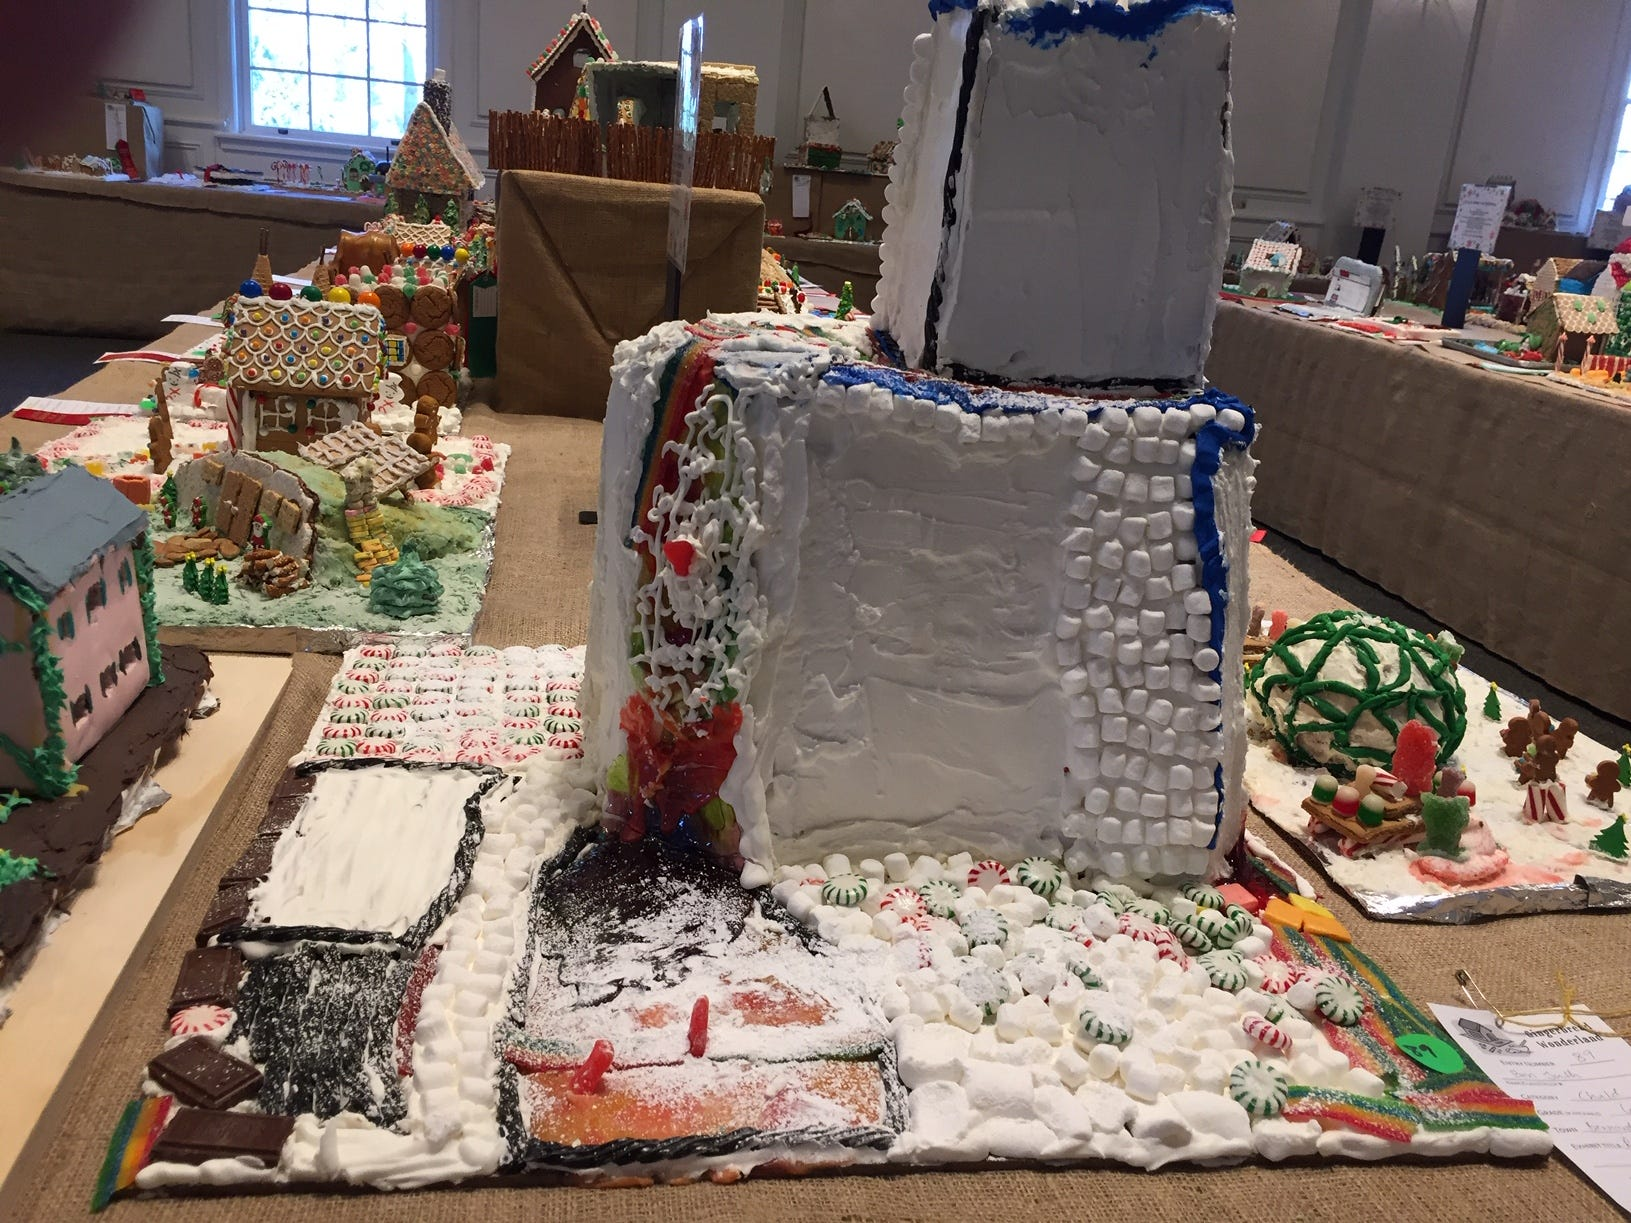 """Rainbow Mountain"" by Ben Juth of Bernardsville, sixth grade, at the Gingerbread Wonderland at the Frelinghuysen Arboretum. Child category."